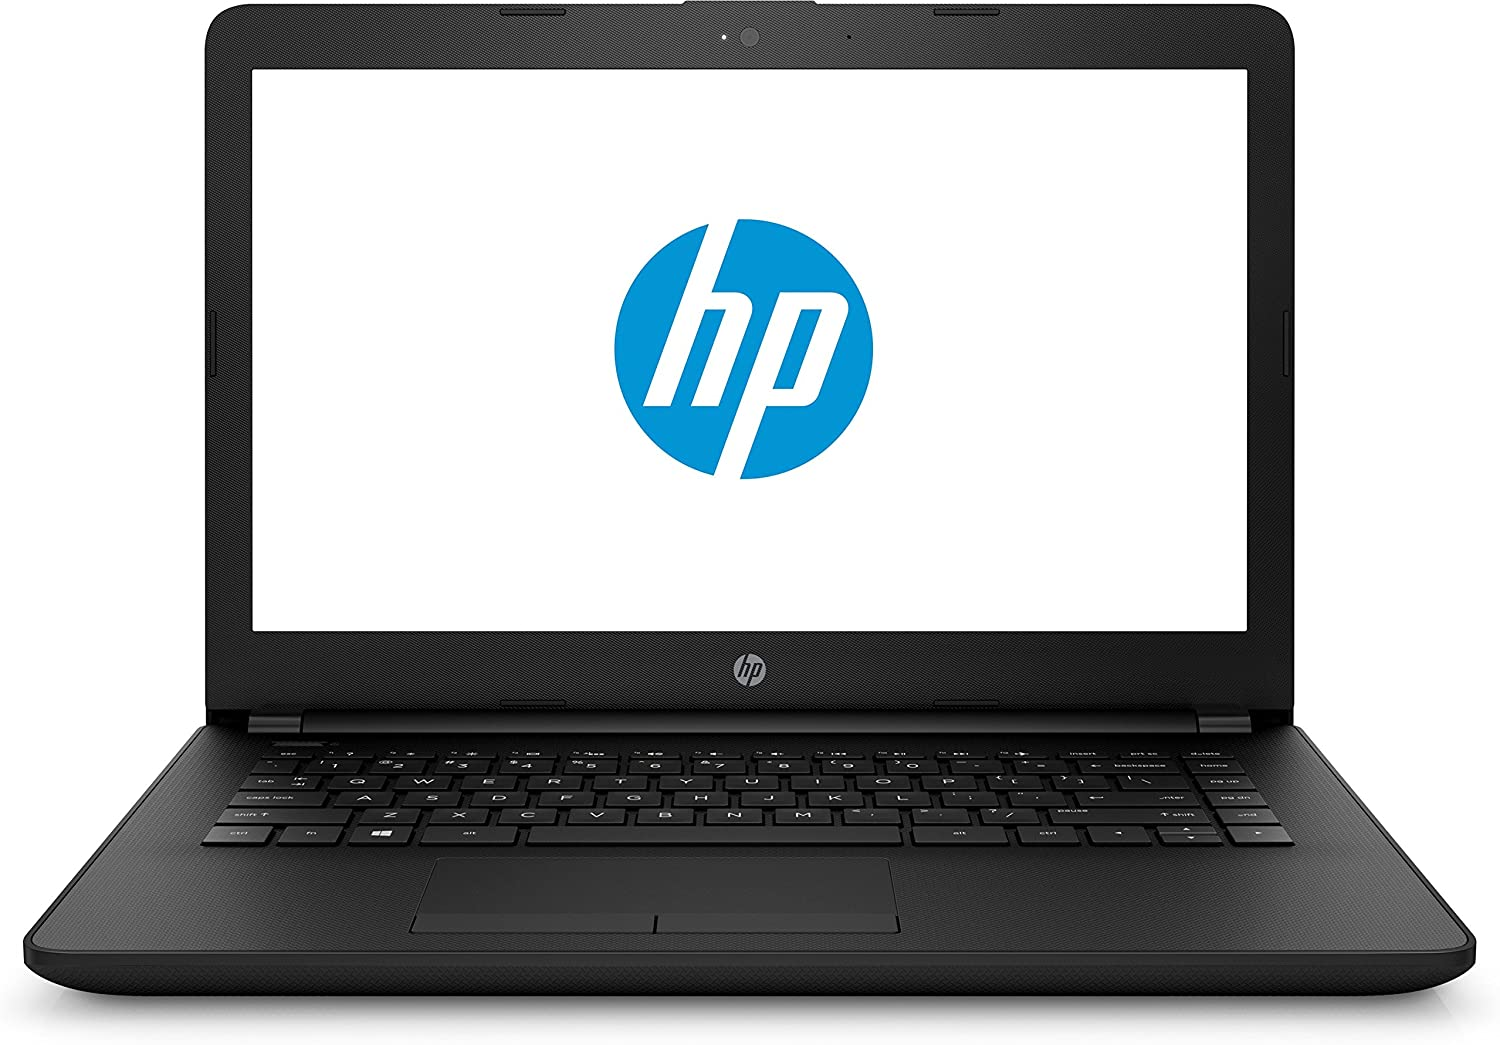 Amazon Ca Laptops Hp Windows 10 Cloudbook 14 Bw012nr 14 Laptop Jet Black Us Version Imported